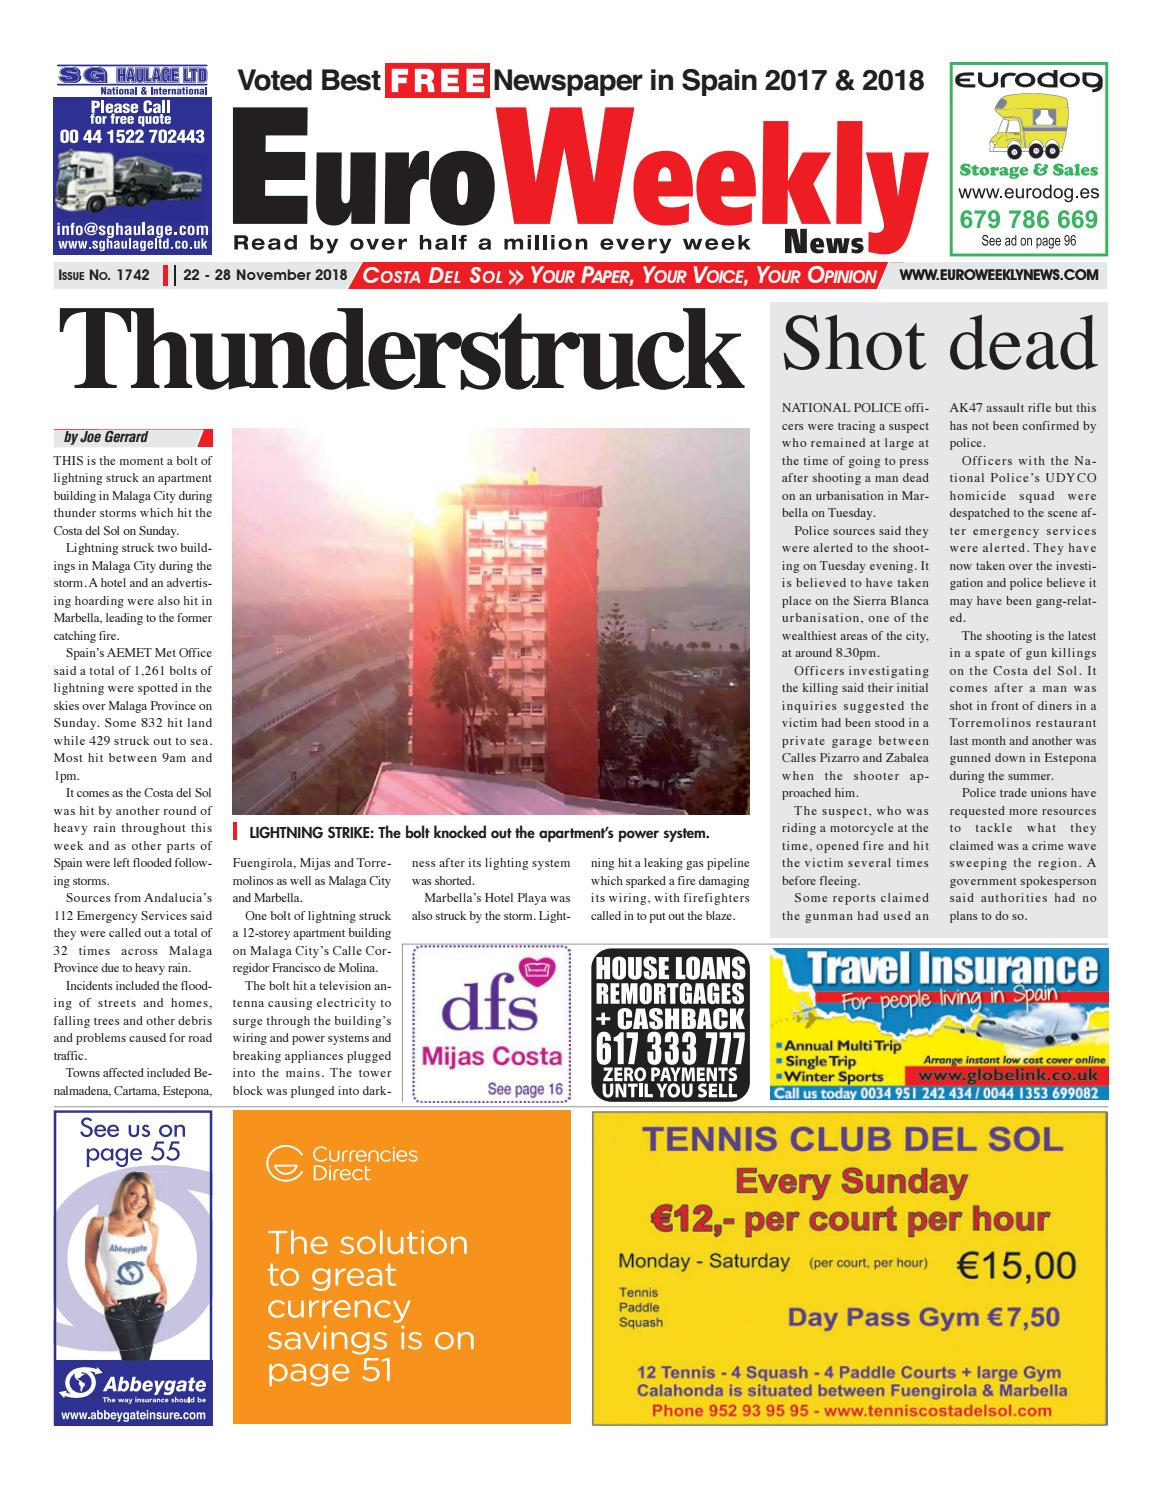 hight resolution of euro weekly news costa del sol 22 28 november 2018 issue 1742 by euro weekly news media s a issuu